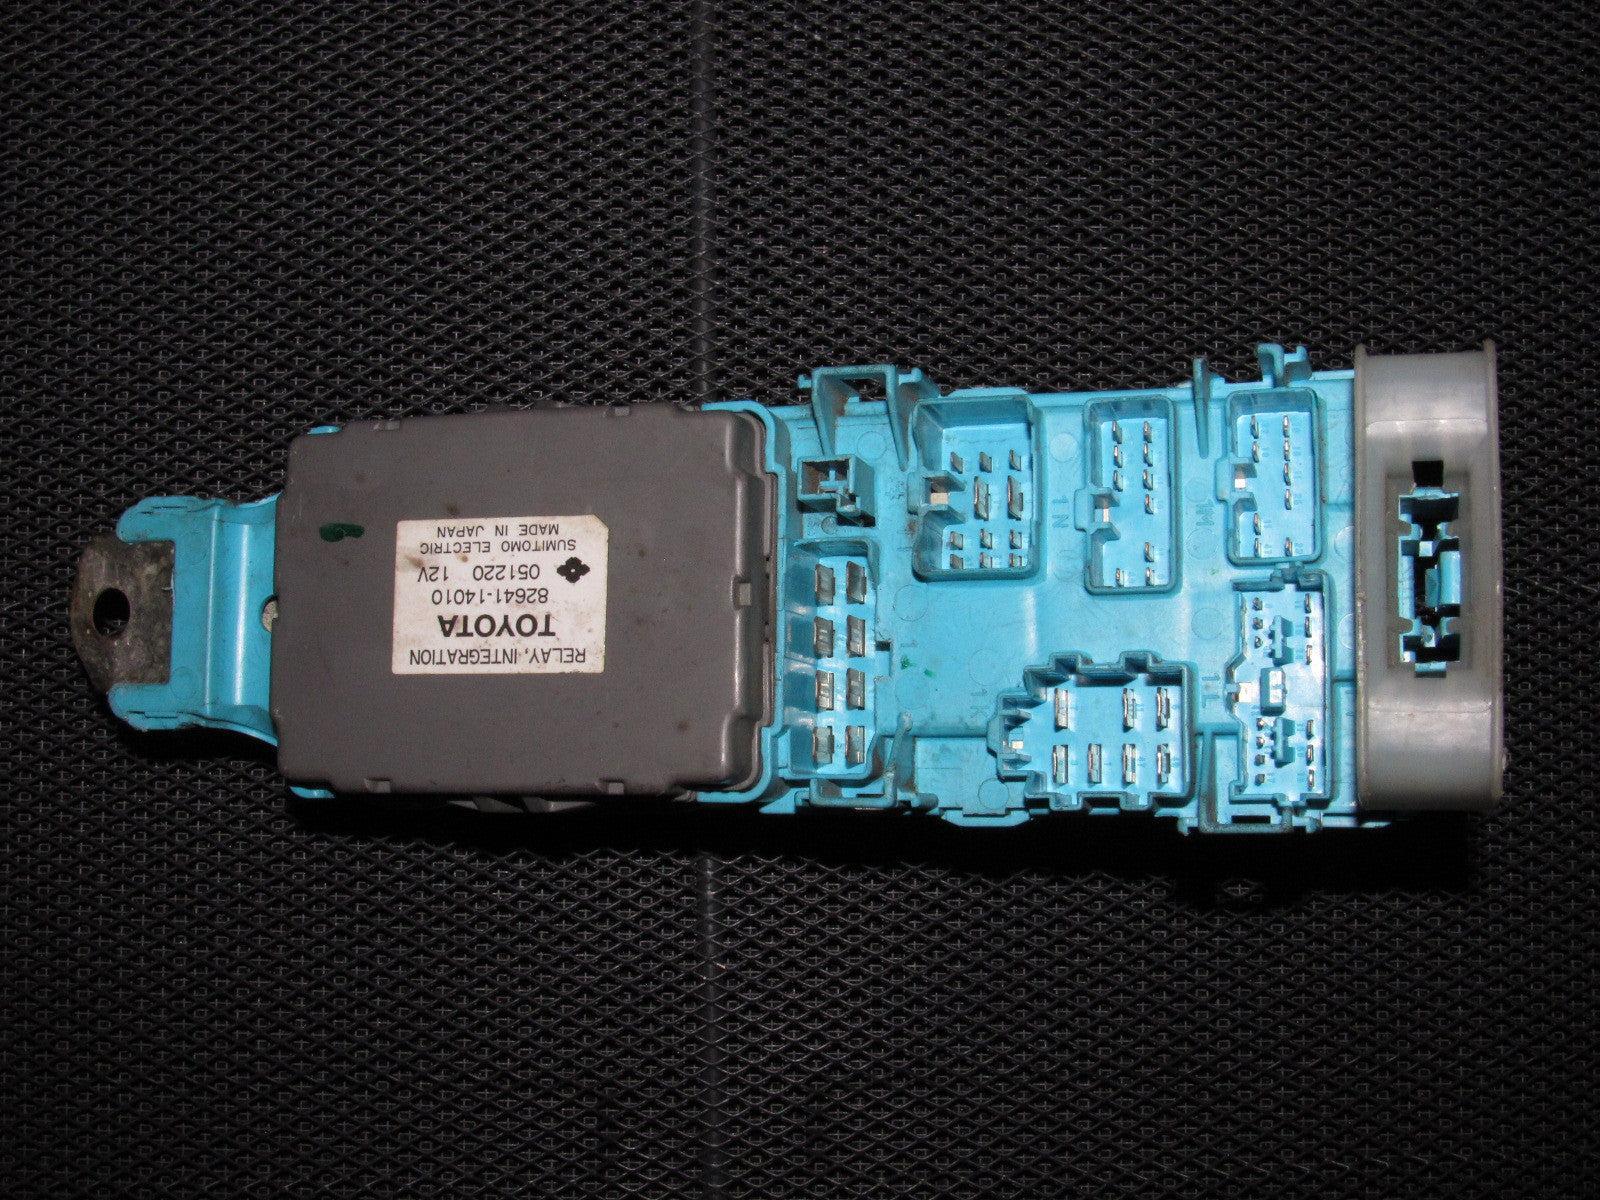 86 87 88 Toyota Supra Oem Turbo Interior Fuse Box 1992 Subaru Svx Diagram